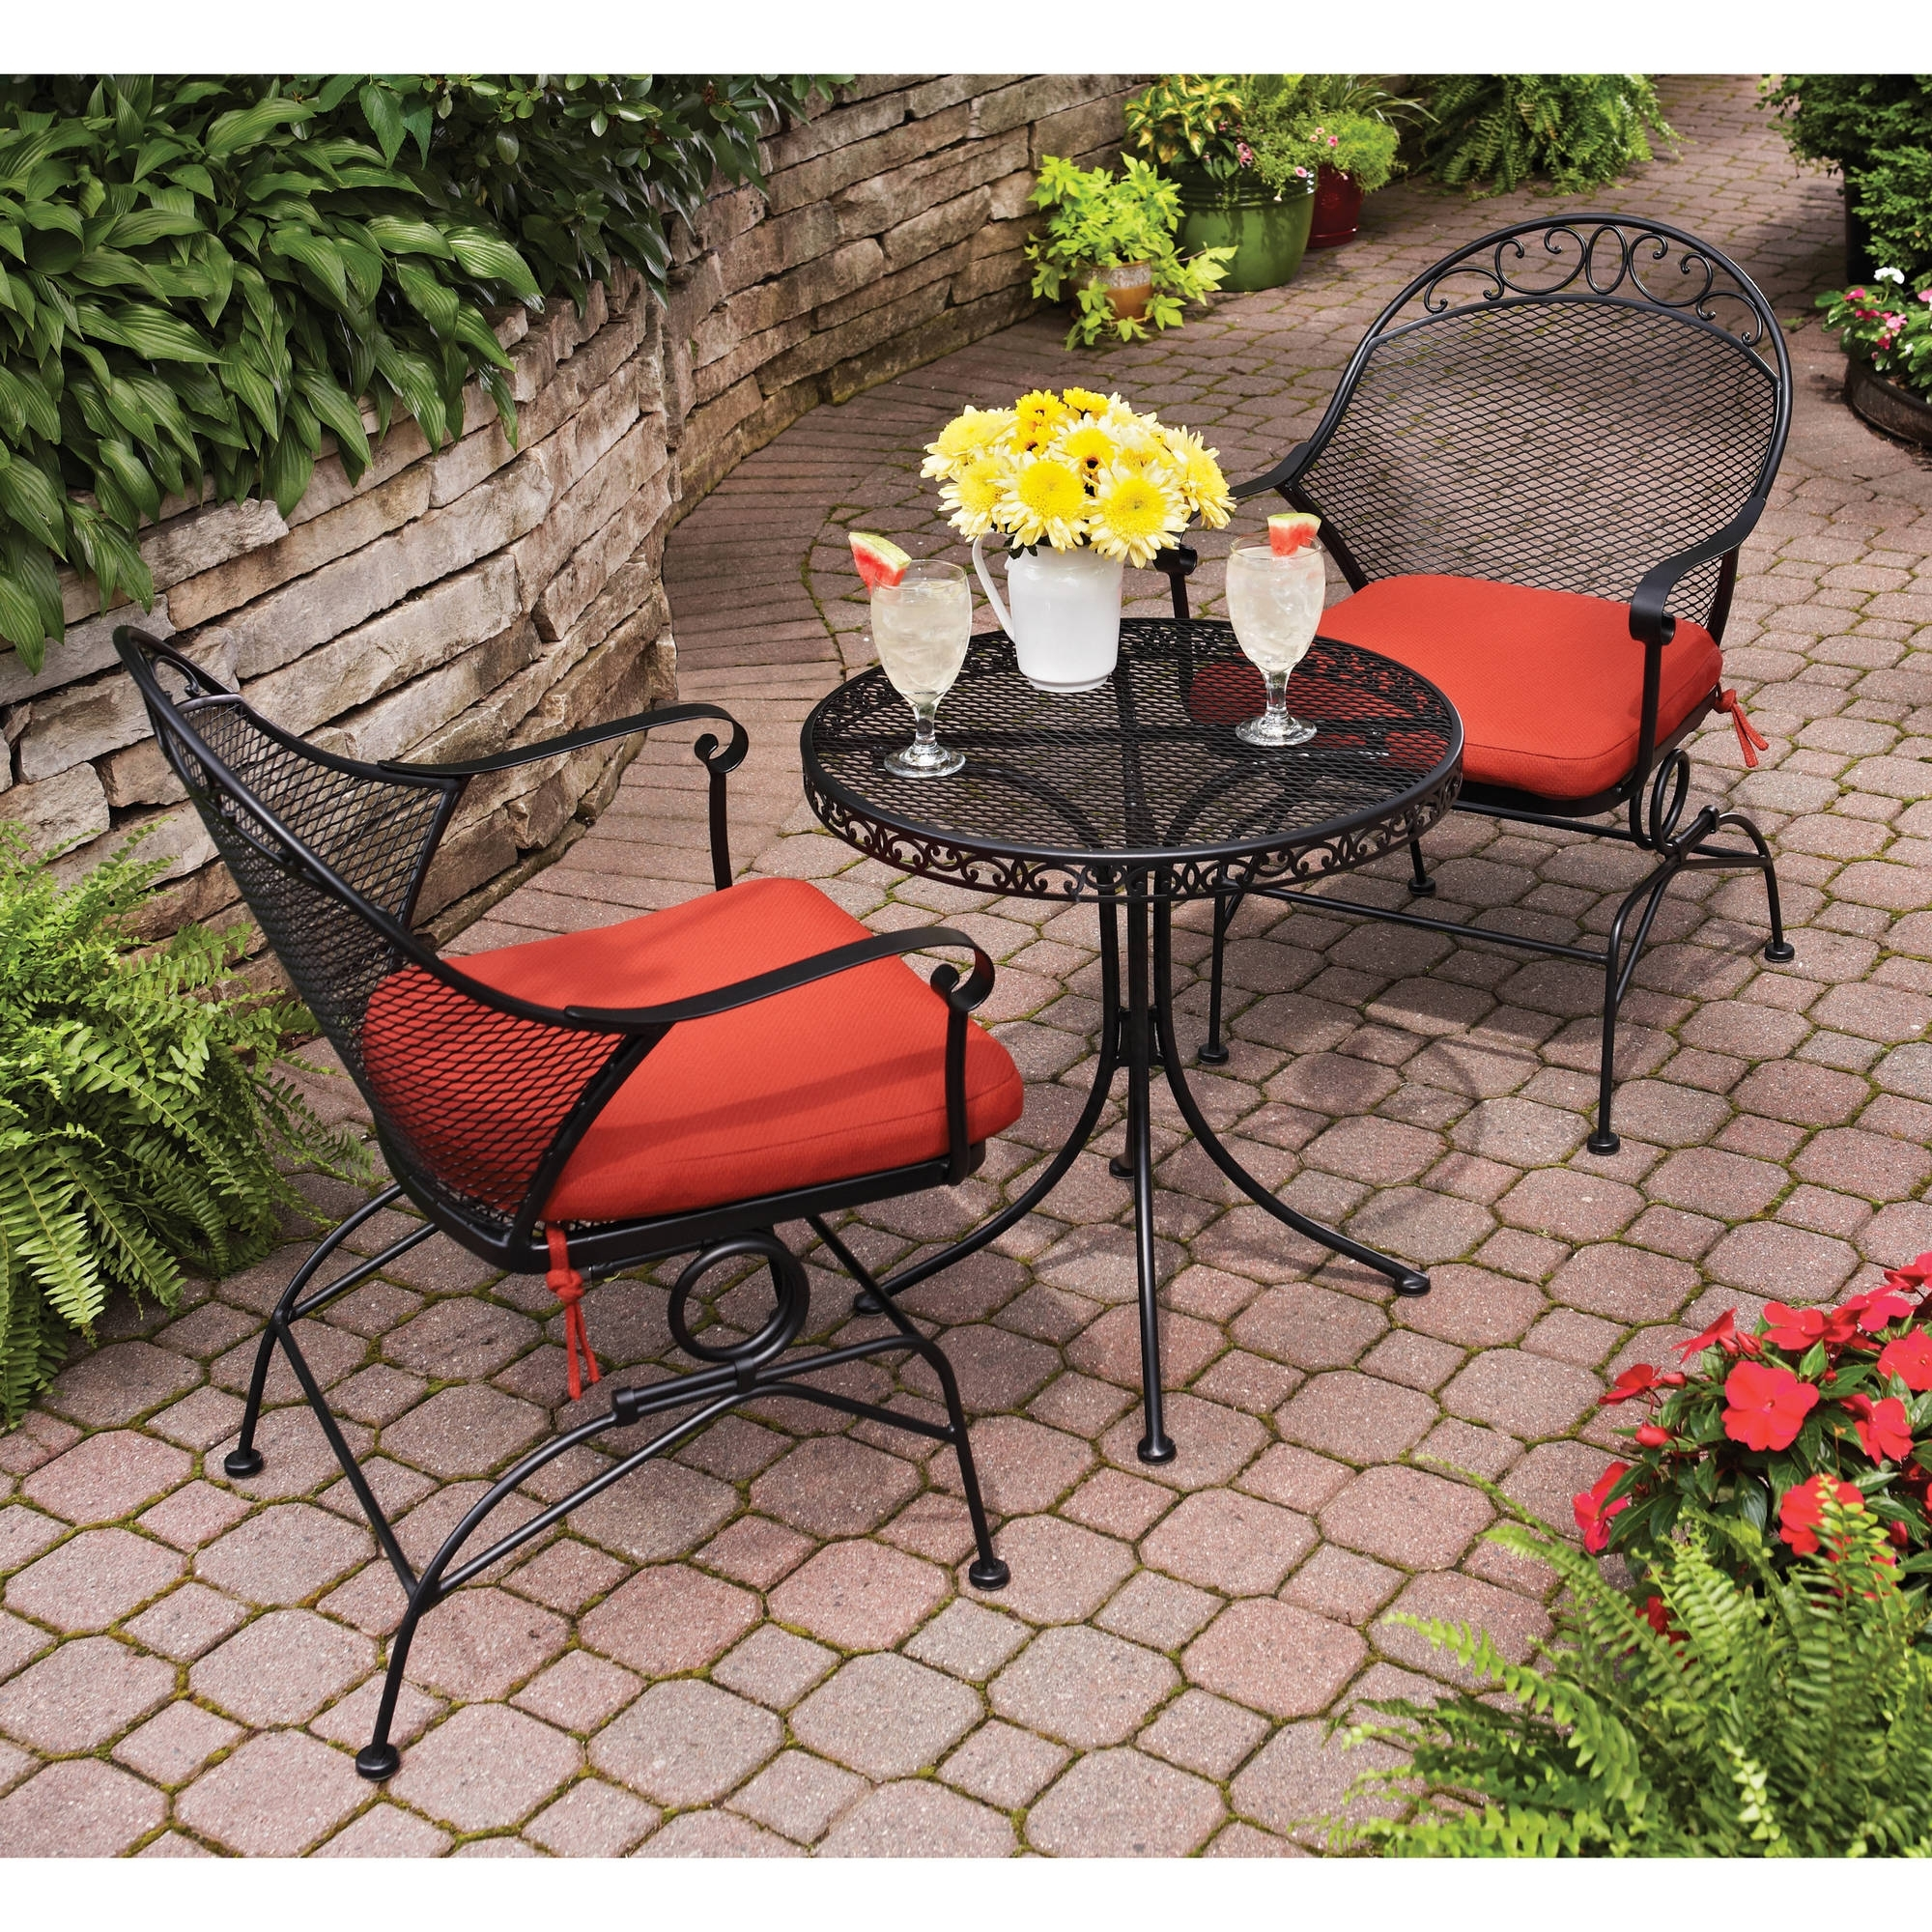 Image of: Exterior Outdoor Seat Cushions Clearance And Walmart Patio Cushions Regarding Red Outdoor Seat Cushions Red Outdoor Seat Cushions Set For Patio